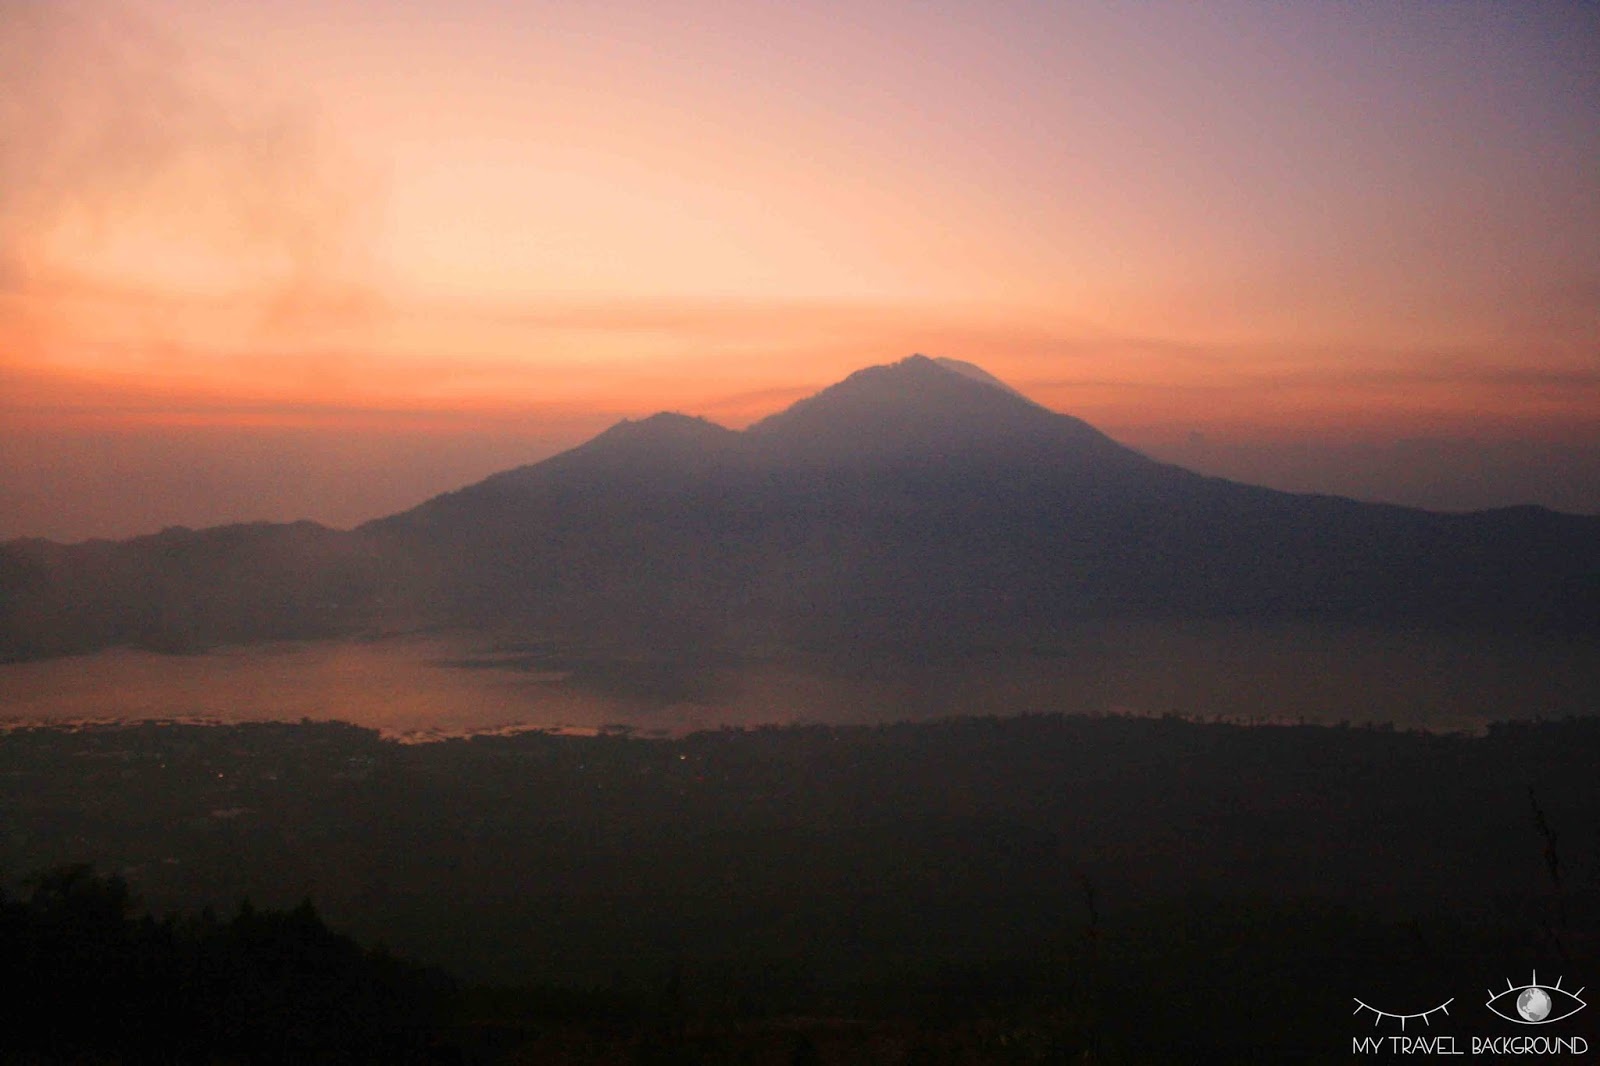 My Travel Background : 10 choses à faire à Bali - Escalader le volcan Mont Batur